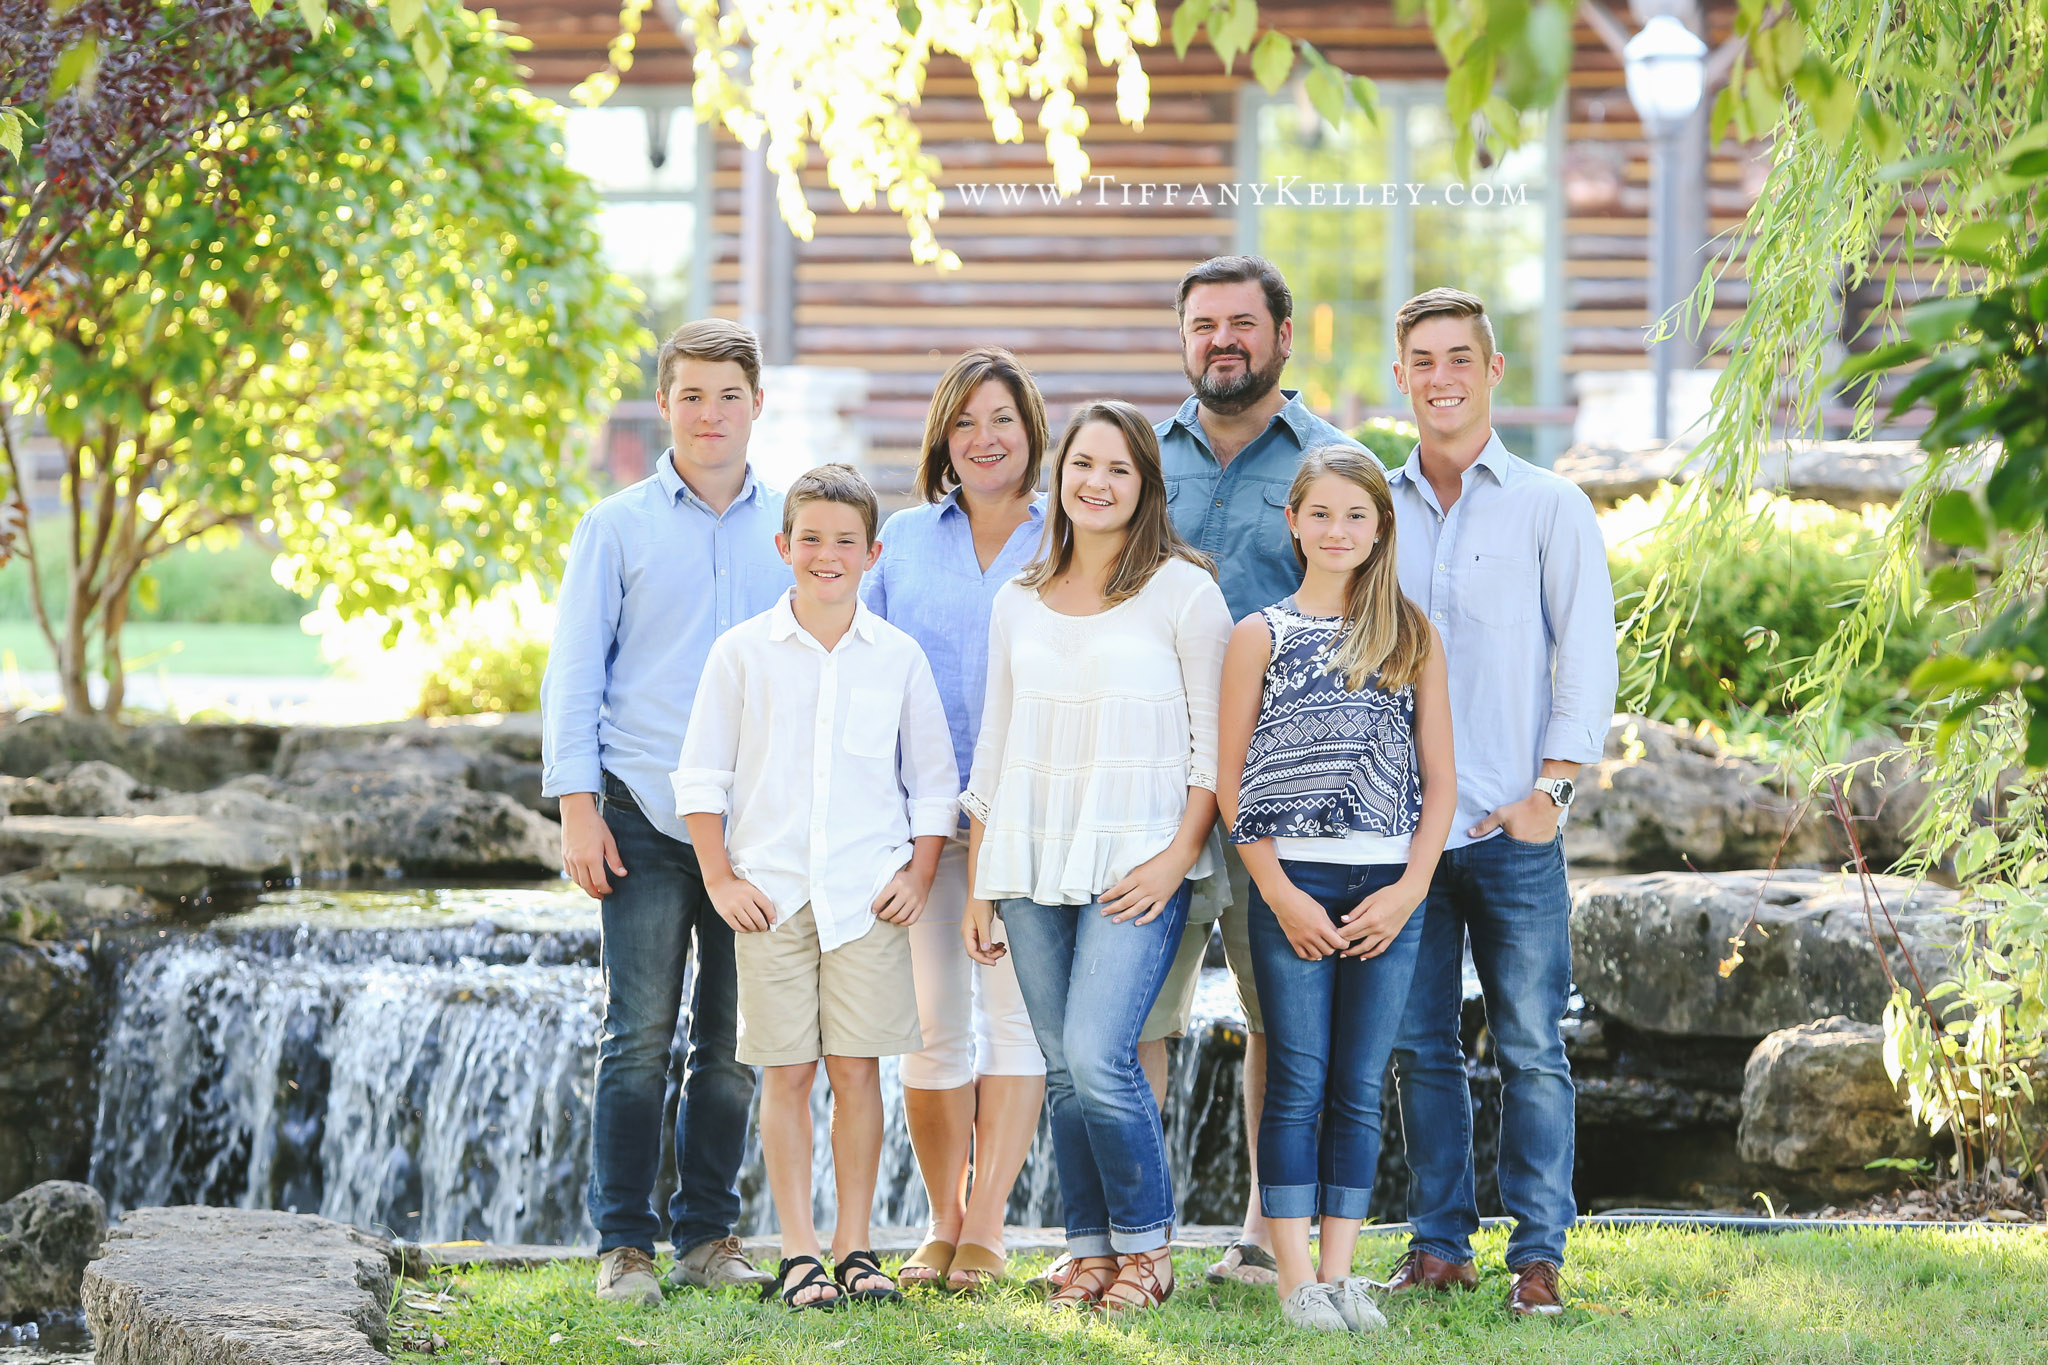 branson-missouri-family-portrait-photographer-tiffany-kelley-photography-01